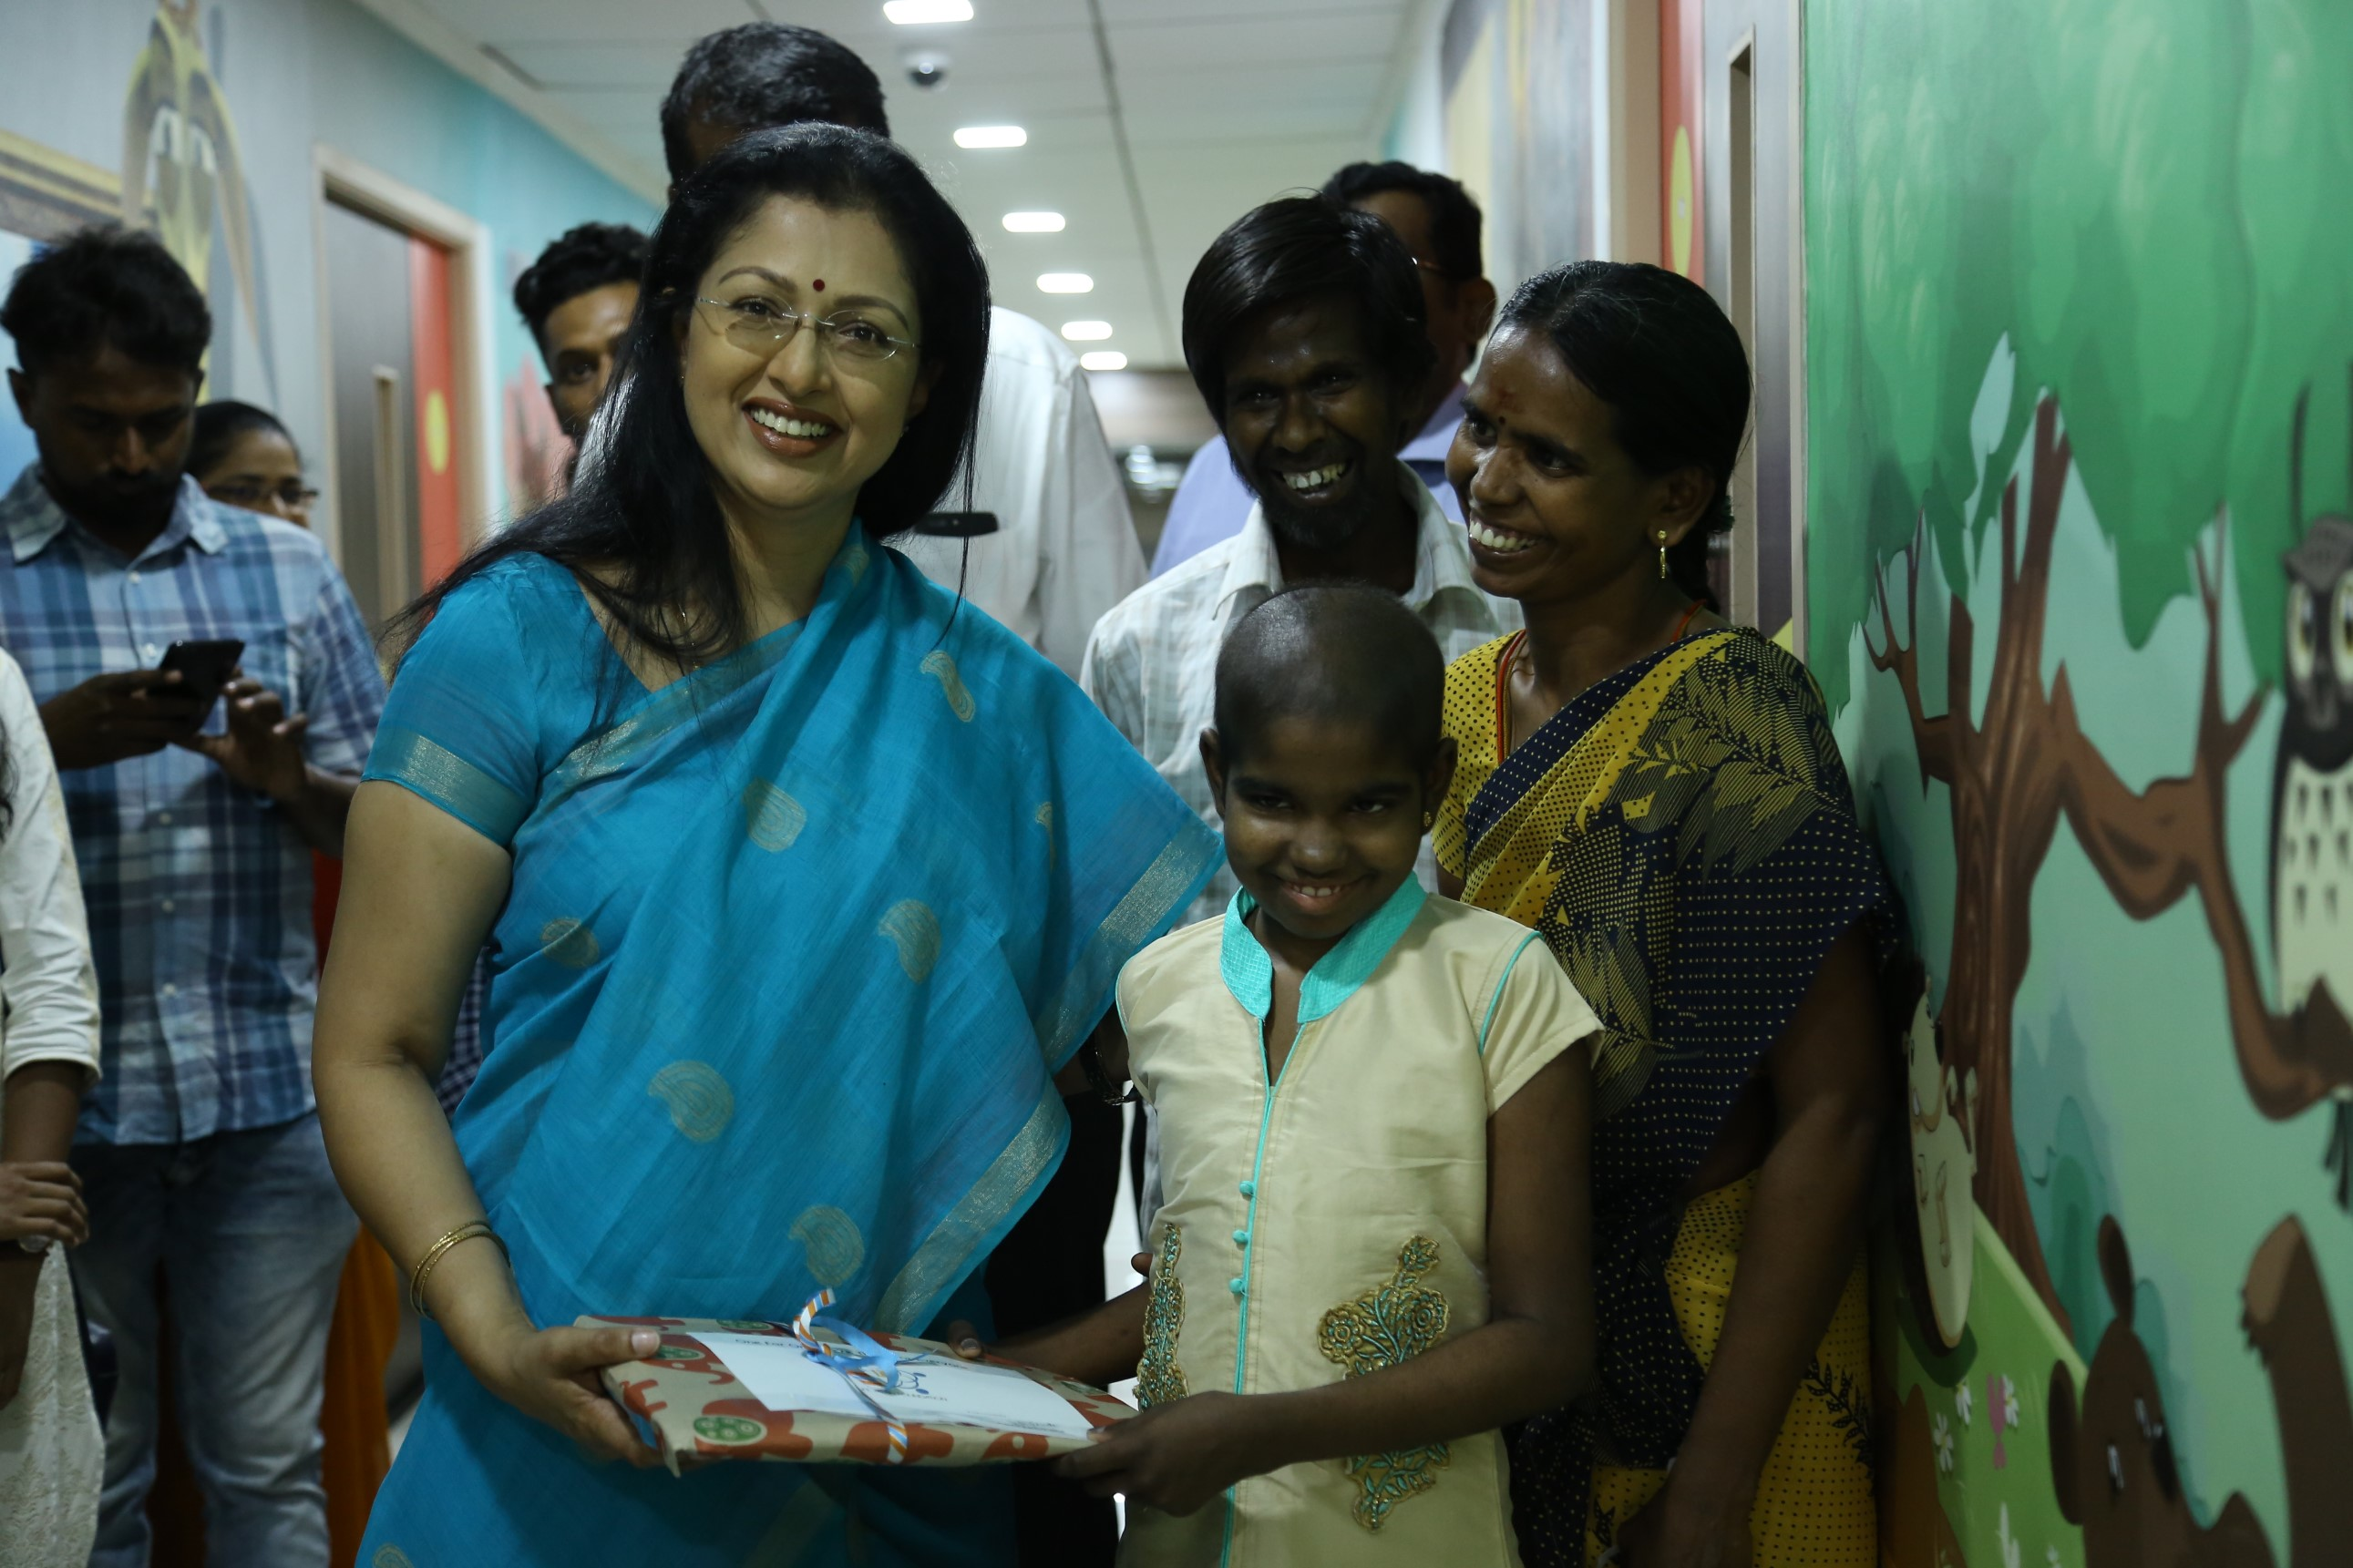 Gautami visited VS cancer hospital Chennai